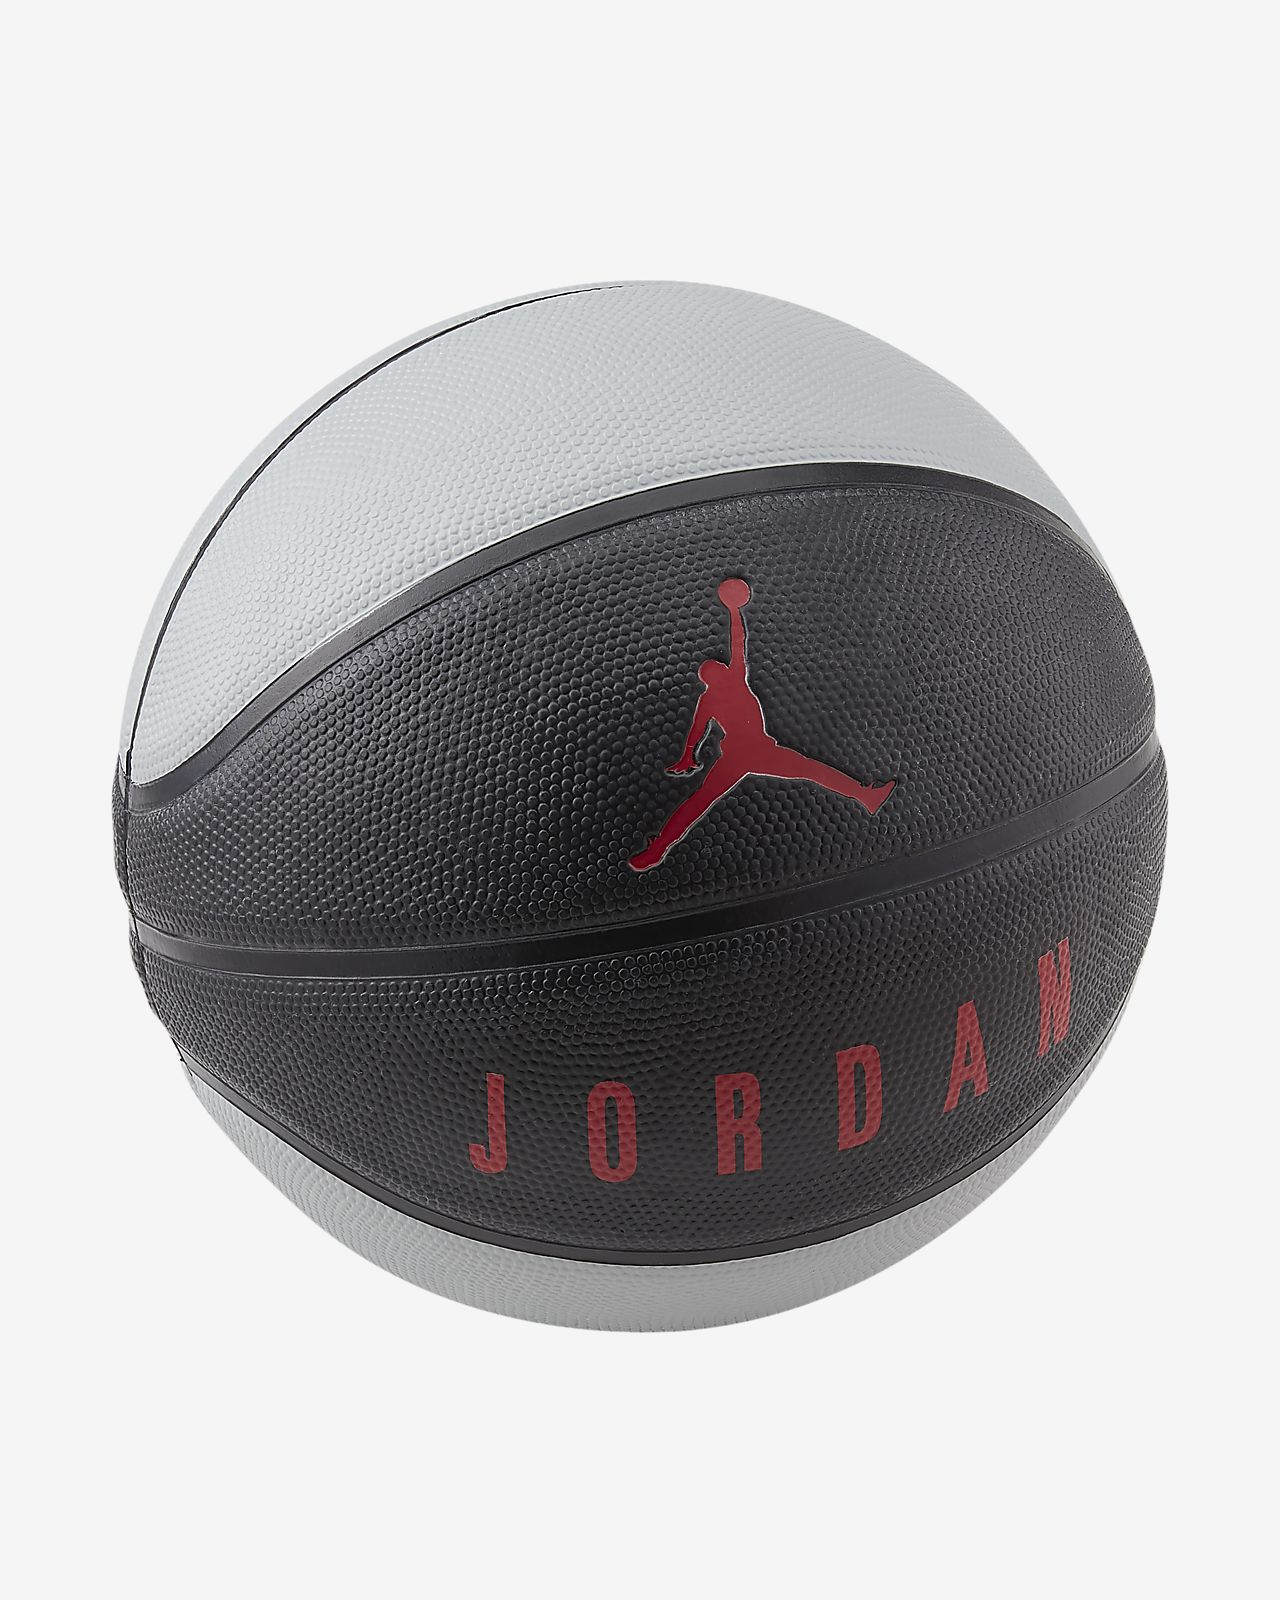 Ballon de basketball Jordan Playground 8P